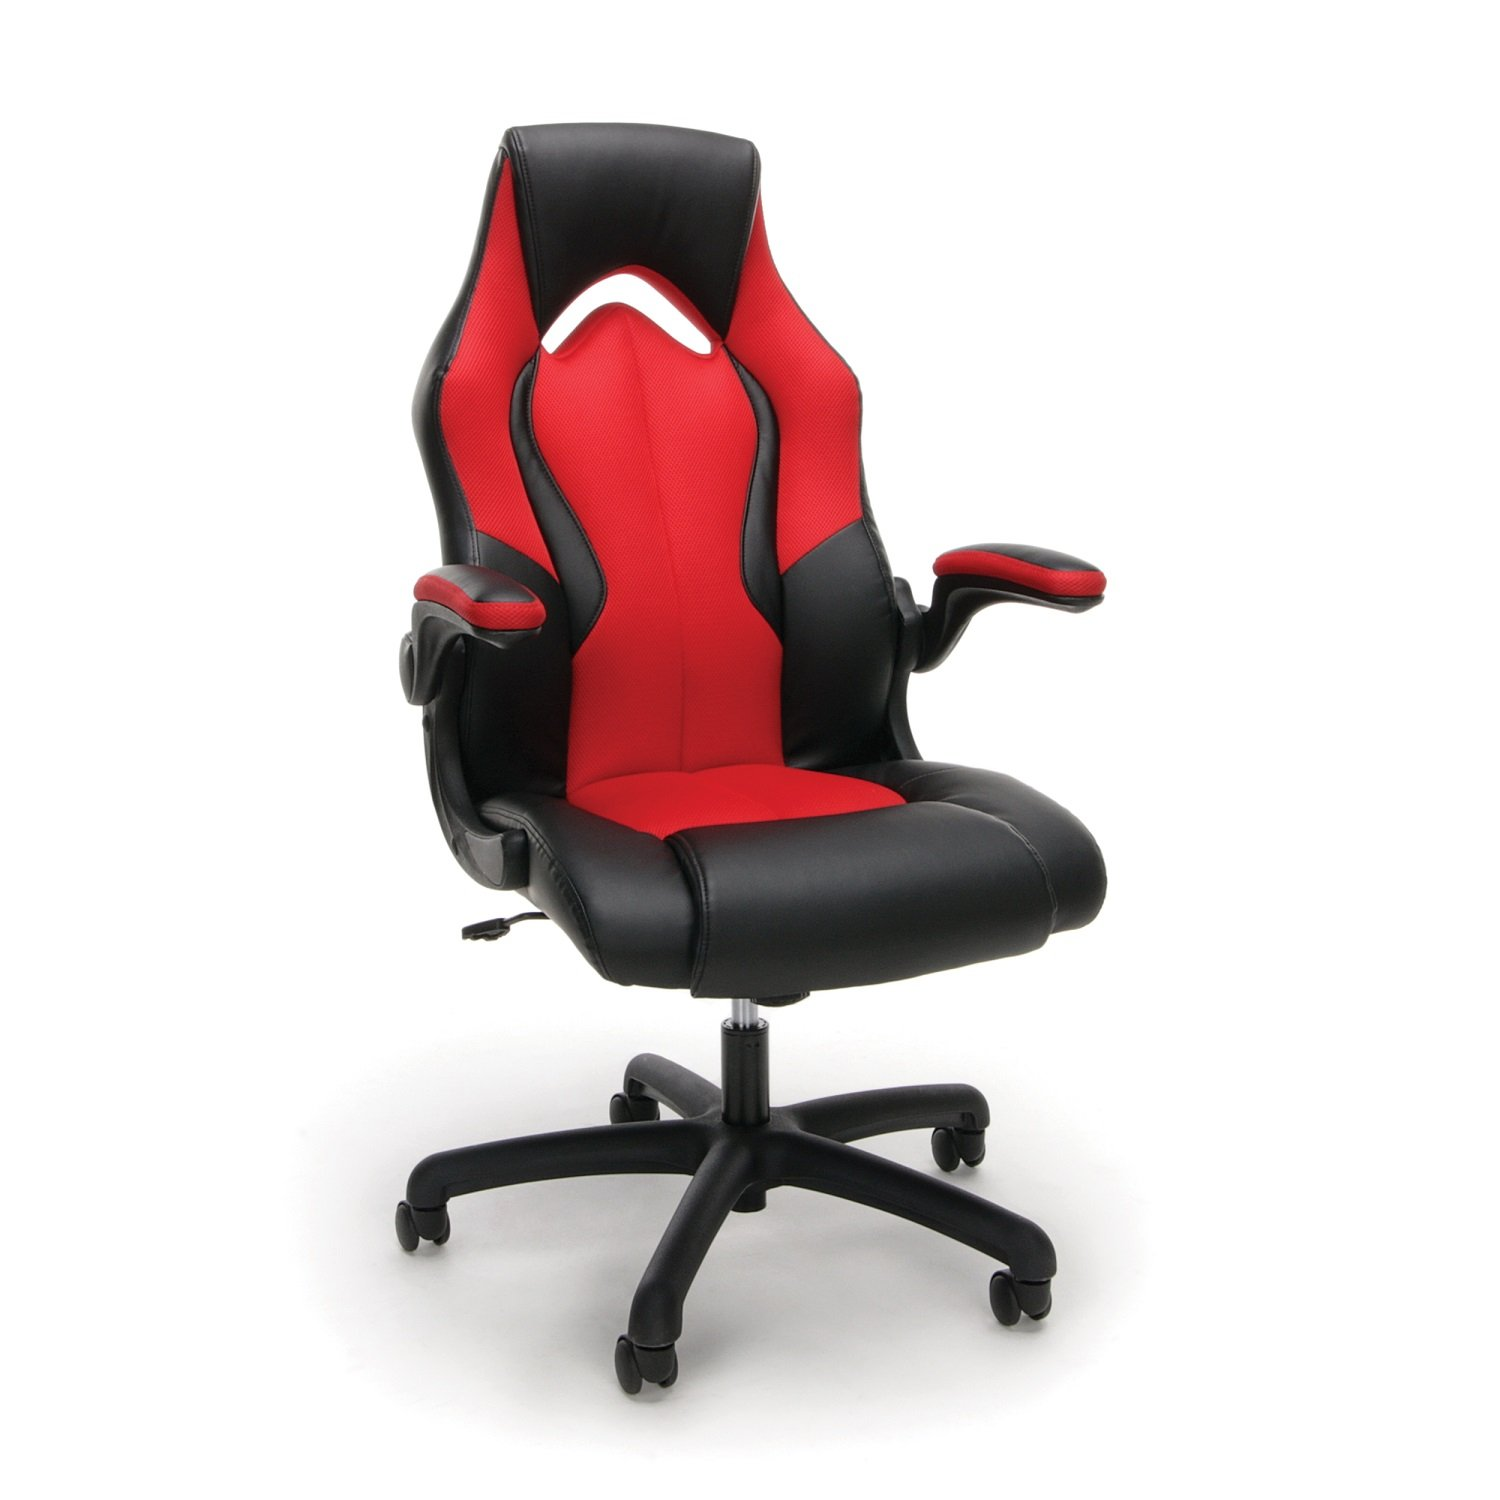 ergonomic office green gaming p computer ikayaa swivel mesh vnnf chair